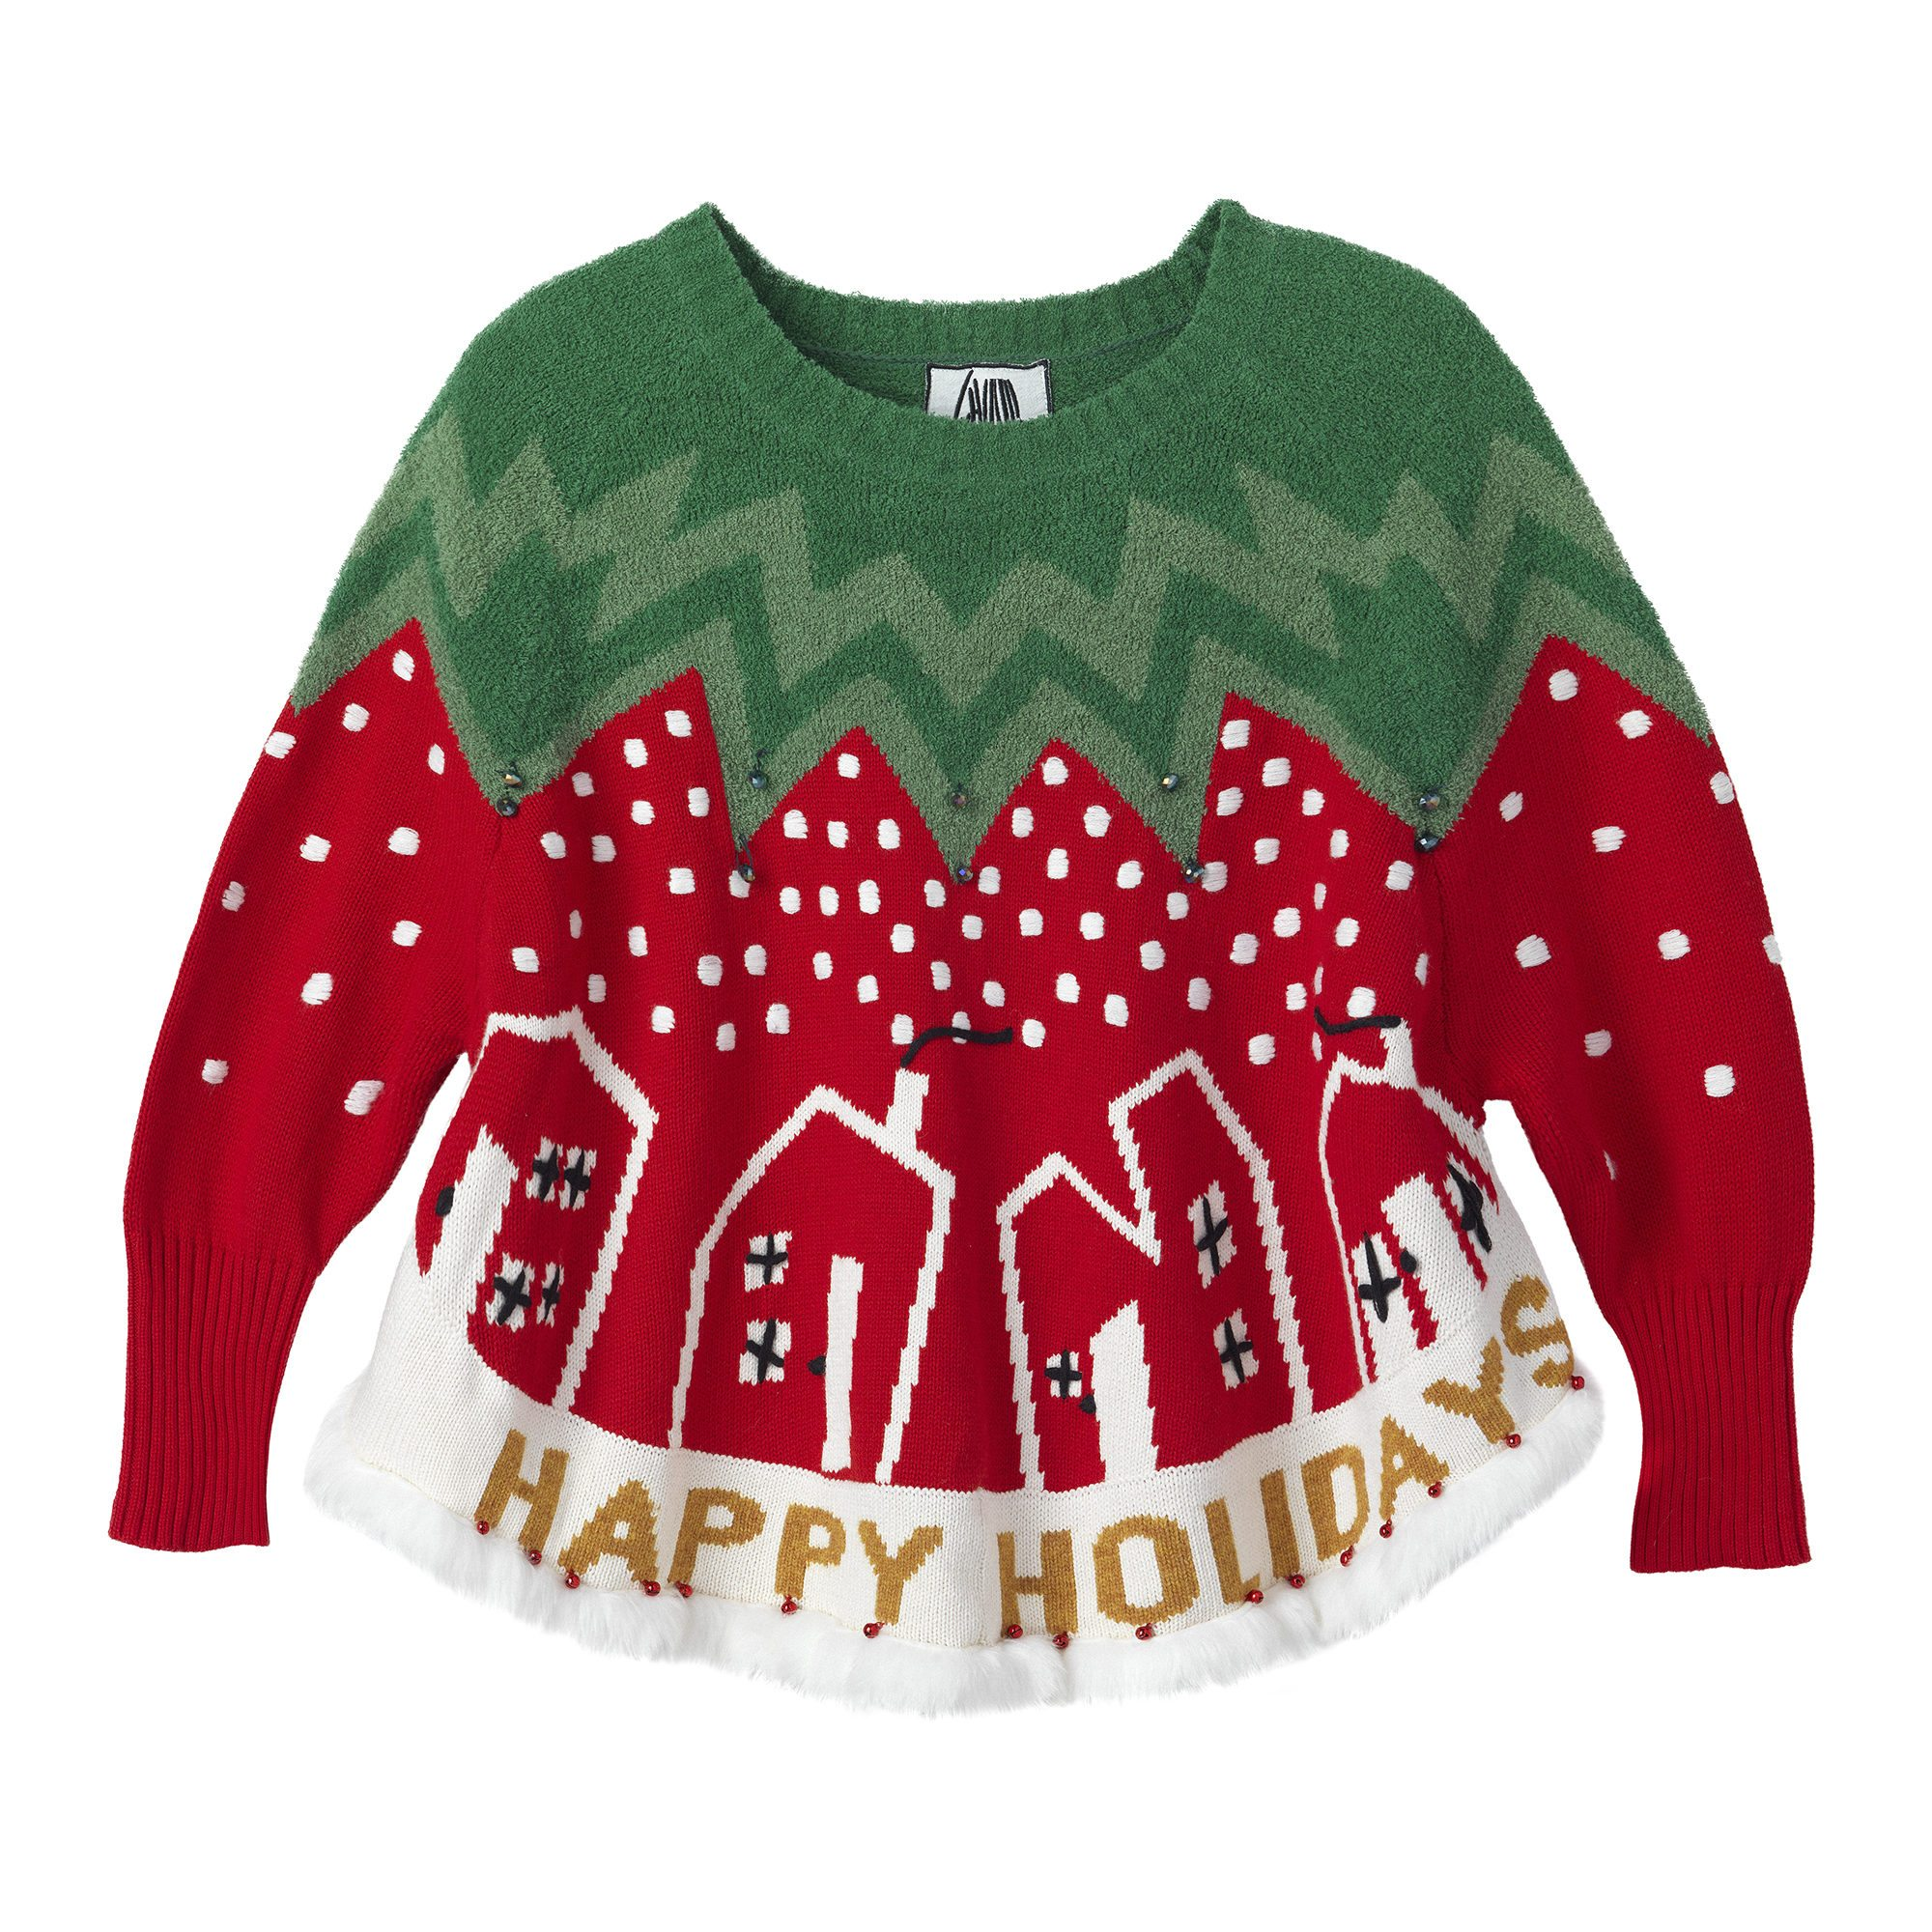 WHOOPI GOLDBERG Christmas Tree Swingy Sweater